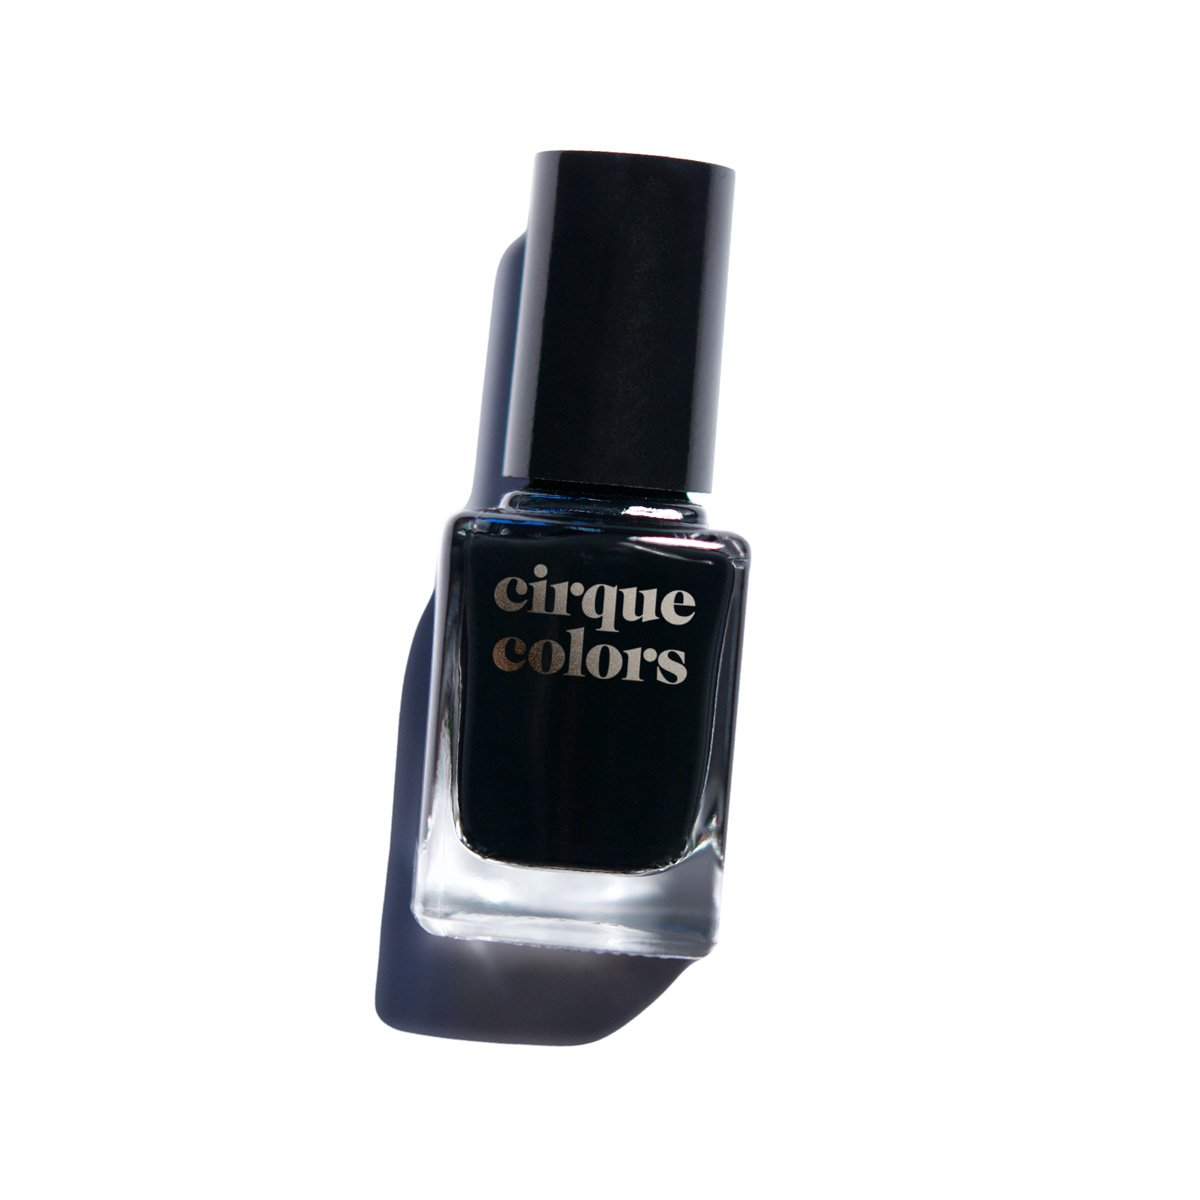 Amazon.com: Cirque Colors Metallic Nail Polish - Halcyon - Rose Gold ...